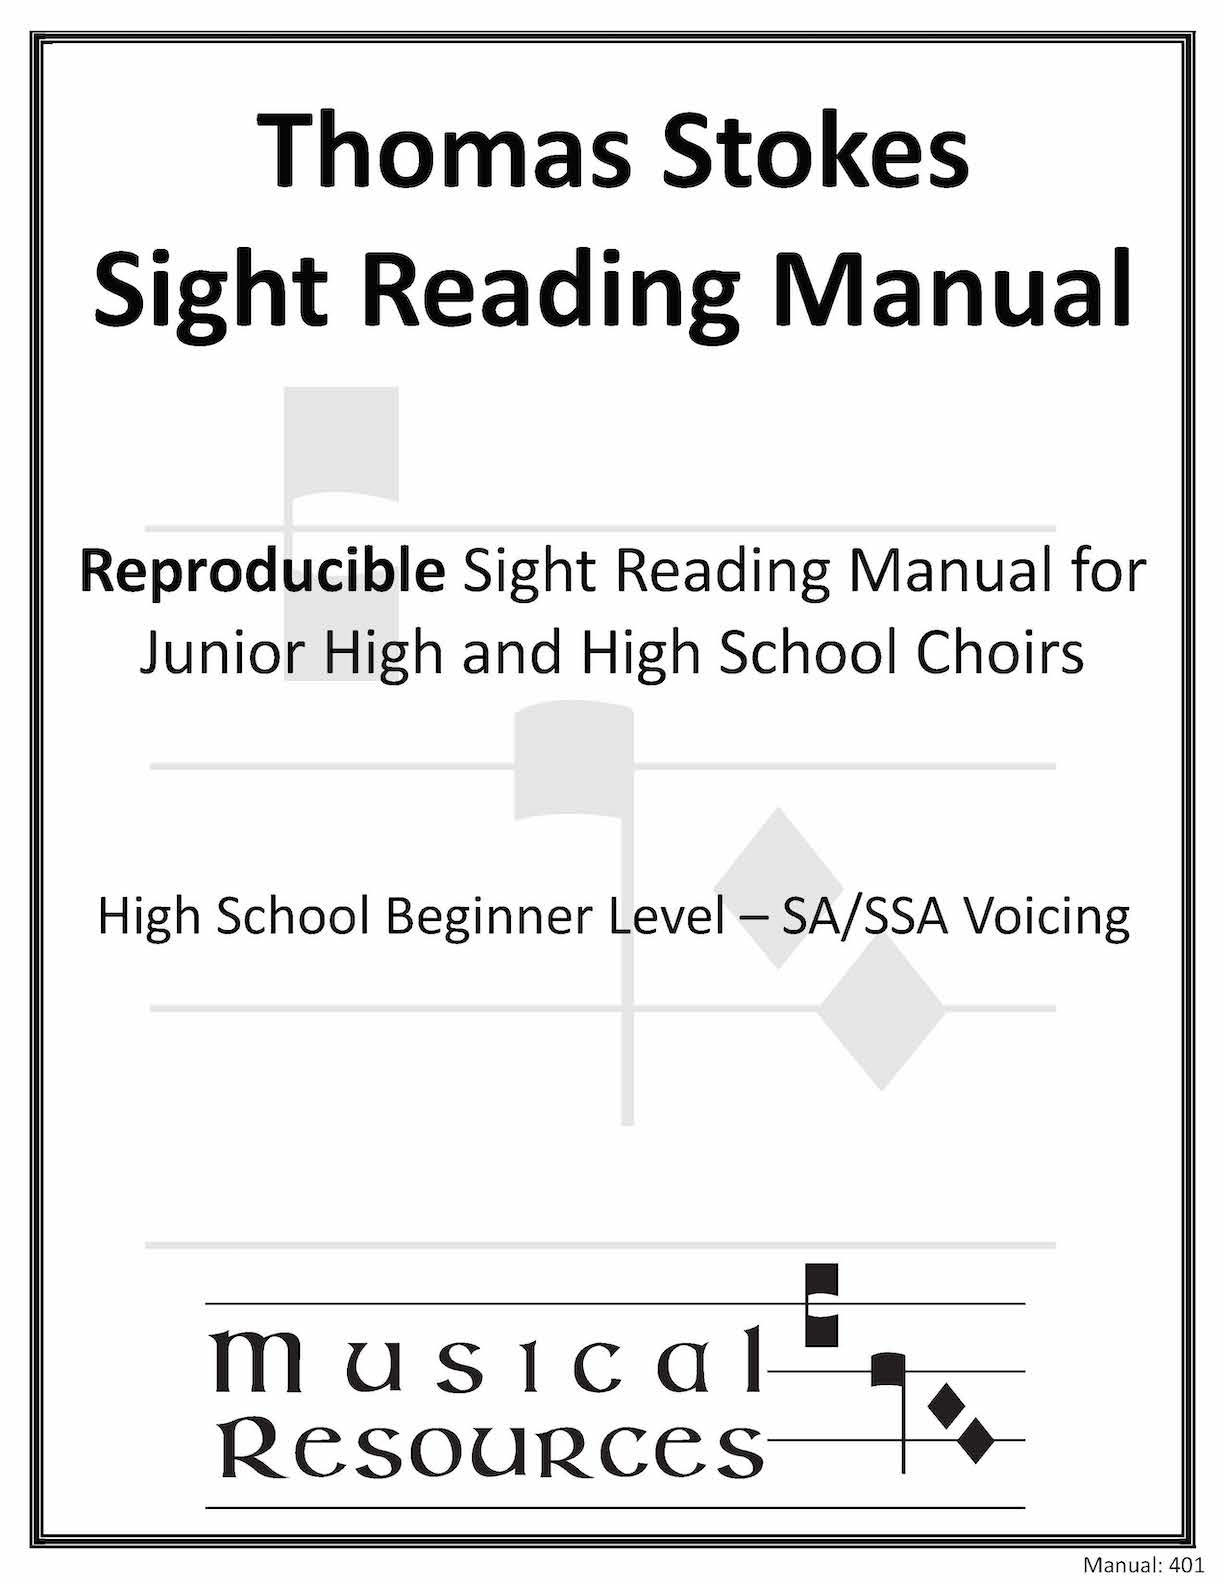 Picture of (Digital) Thomas Stokes Sightreading Manual #401 - SA/SSA High School Beginner